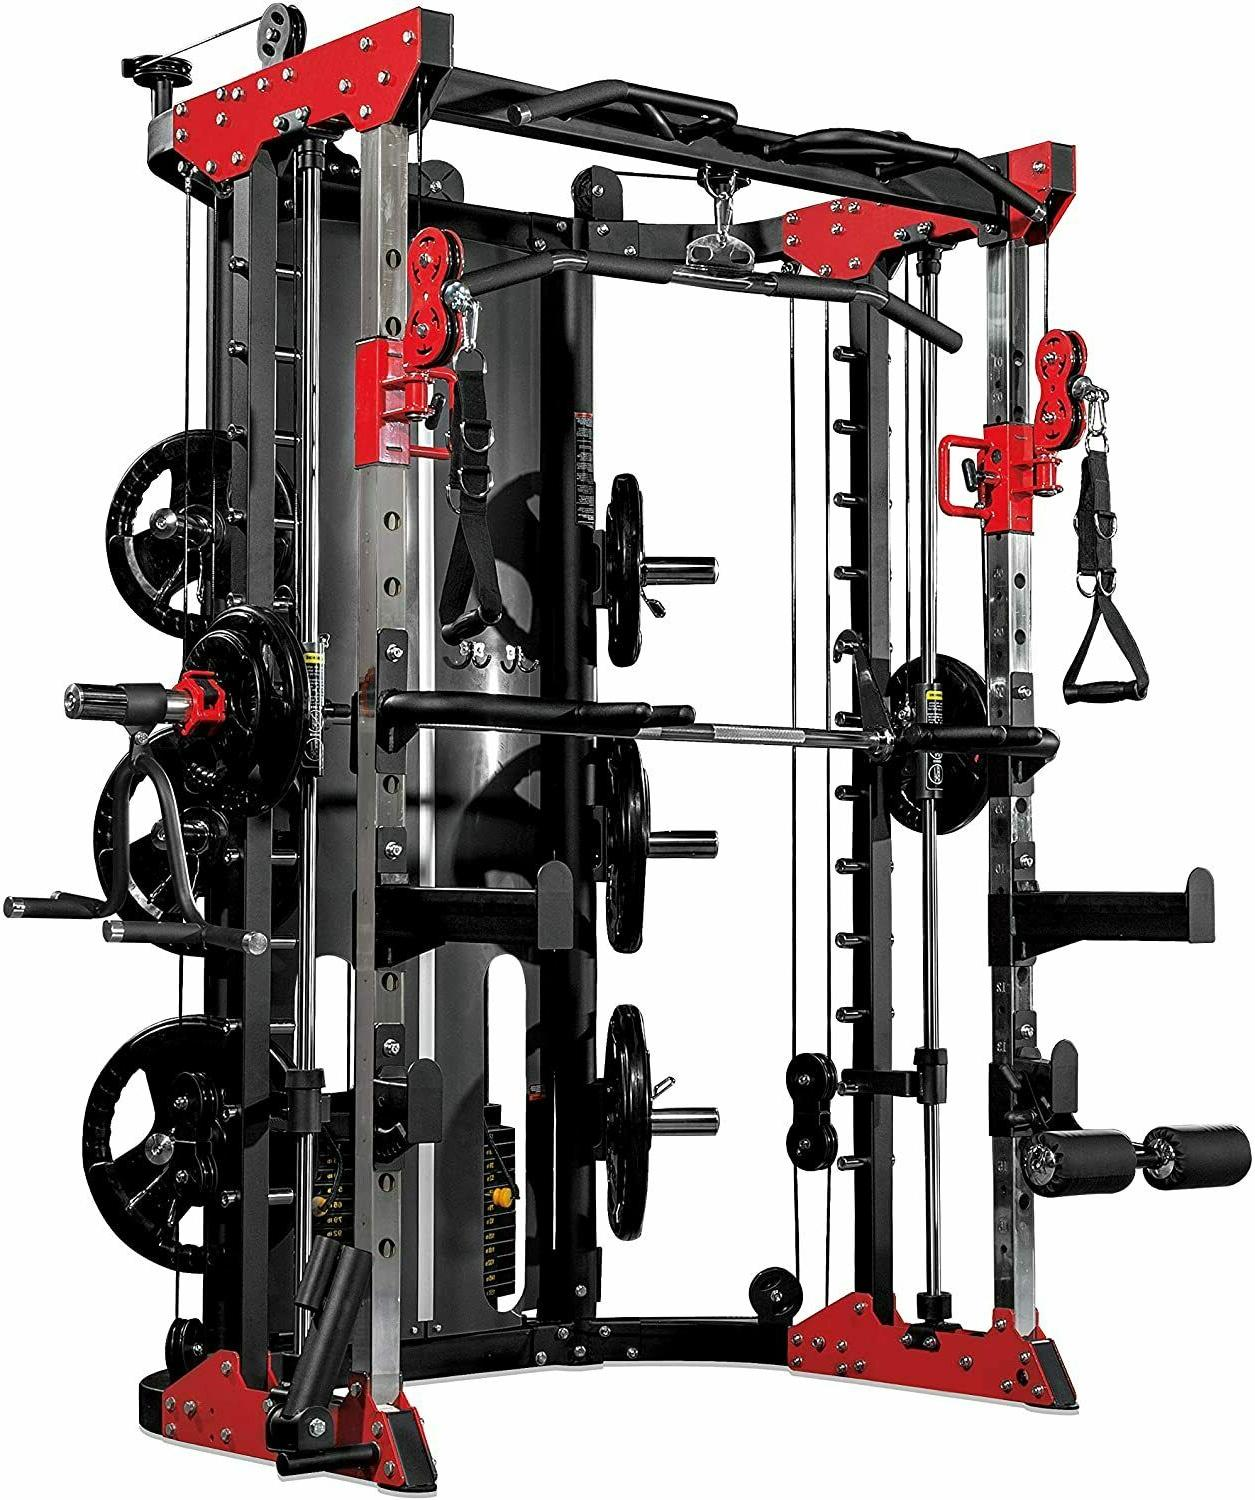 Multifunctional smith machine for home. .